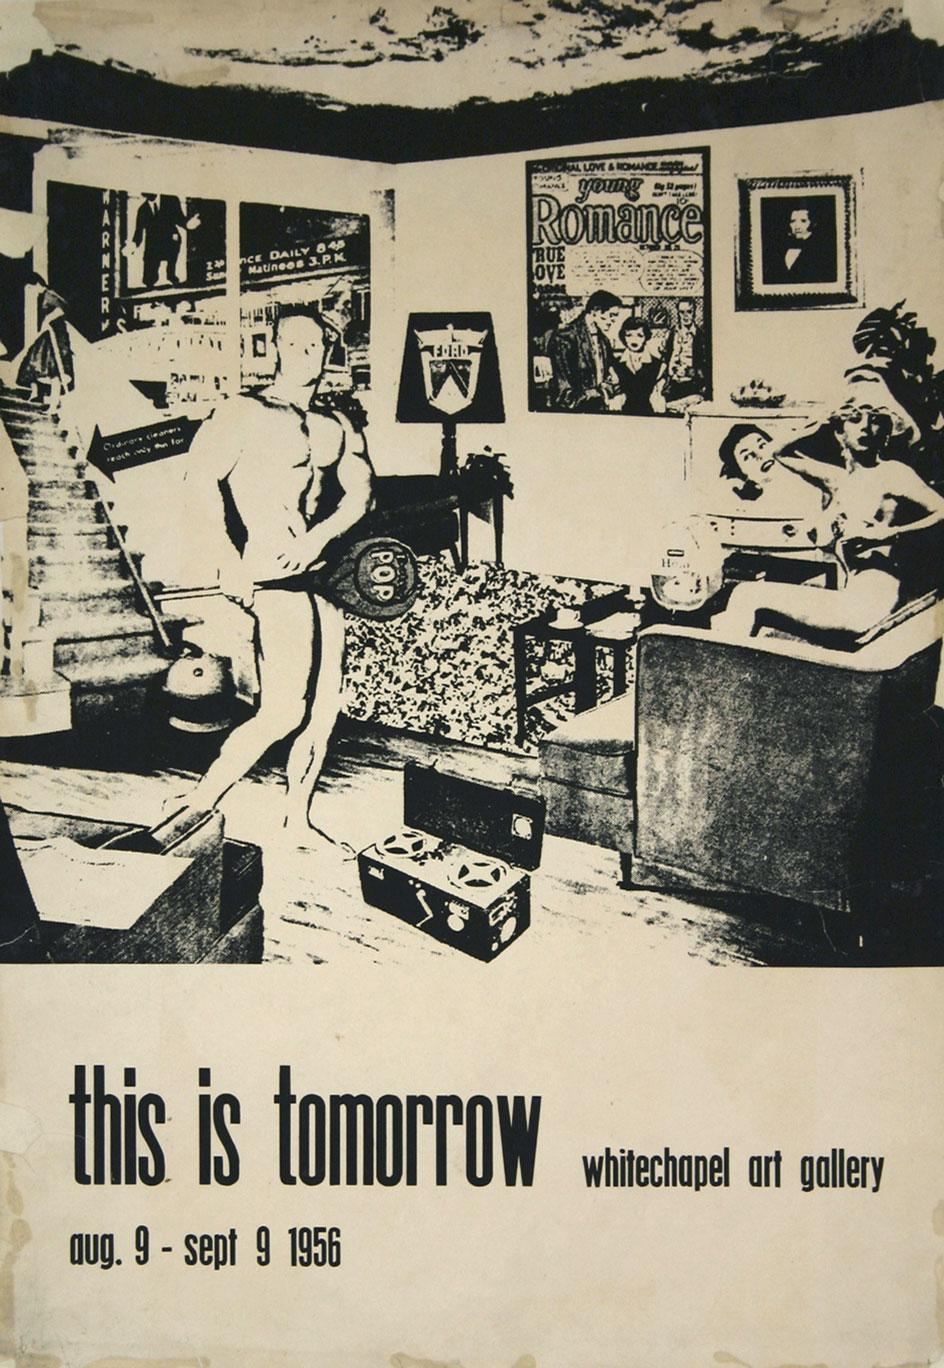 Exhibition poster for 'This is Tomorrow', 1956 at the Whitechapel Gallery, London